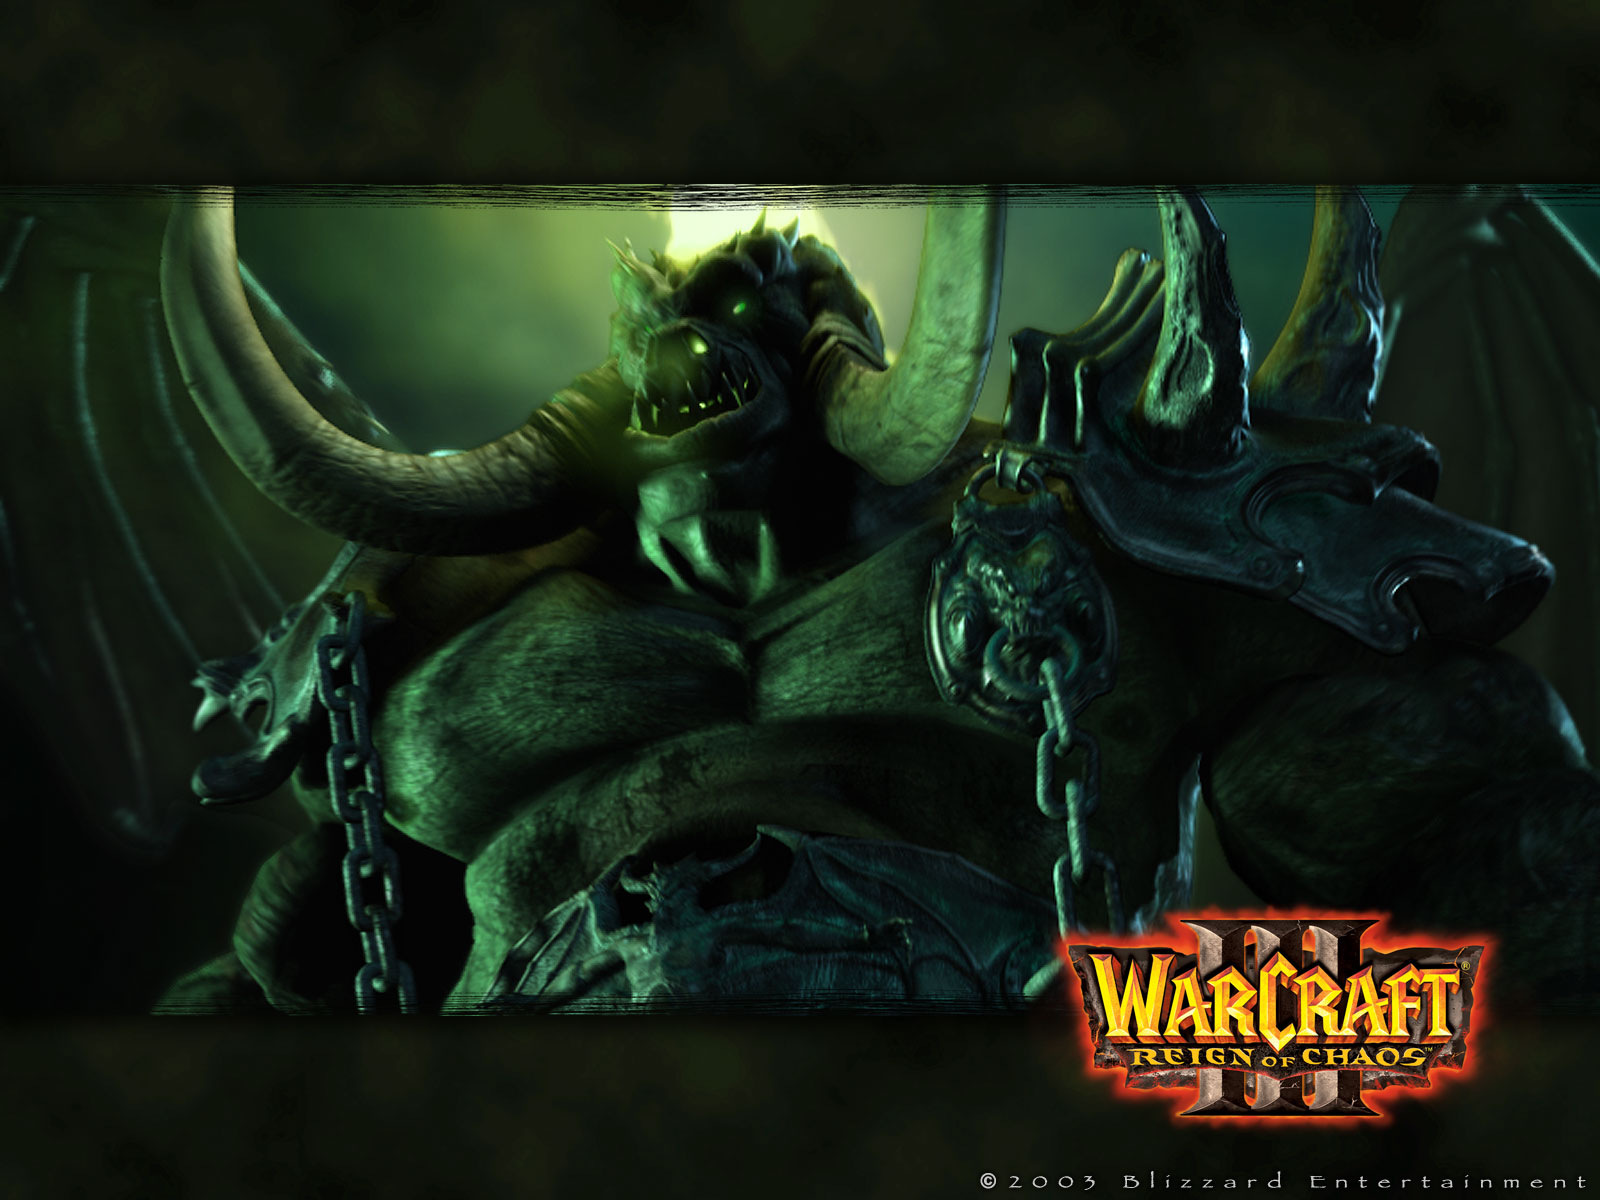 Коды Для Warcraft 3 - The Frozen Throne